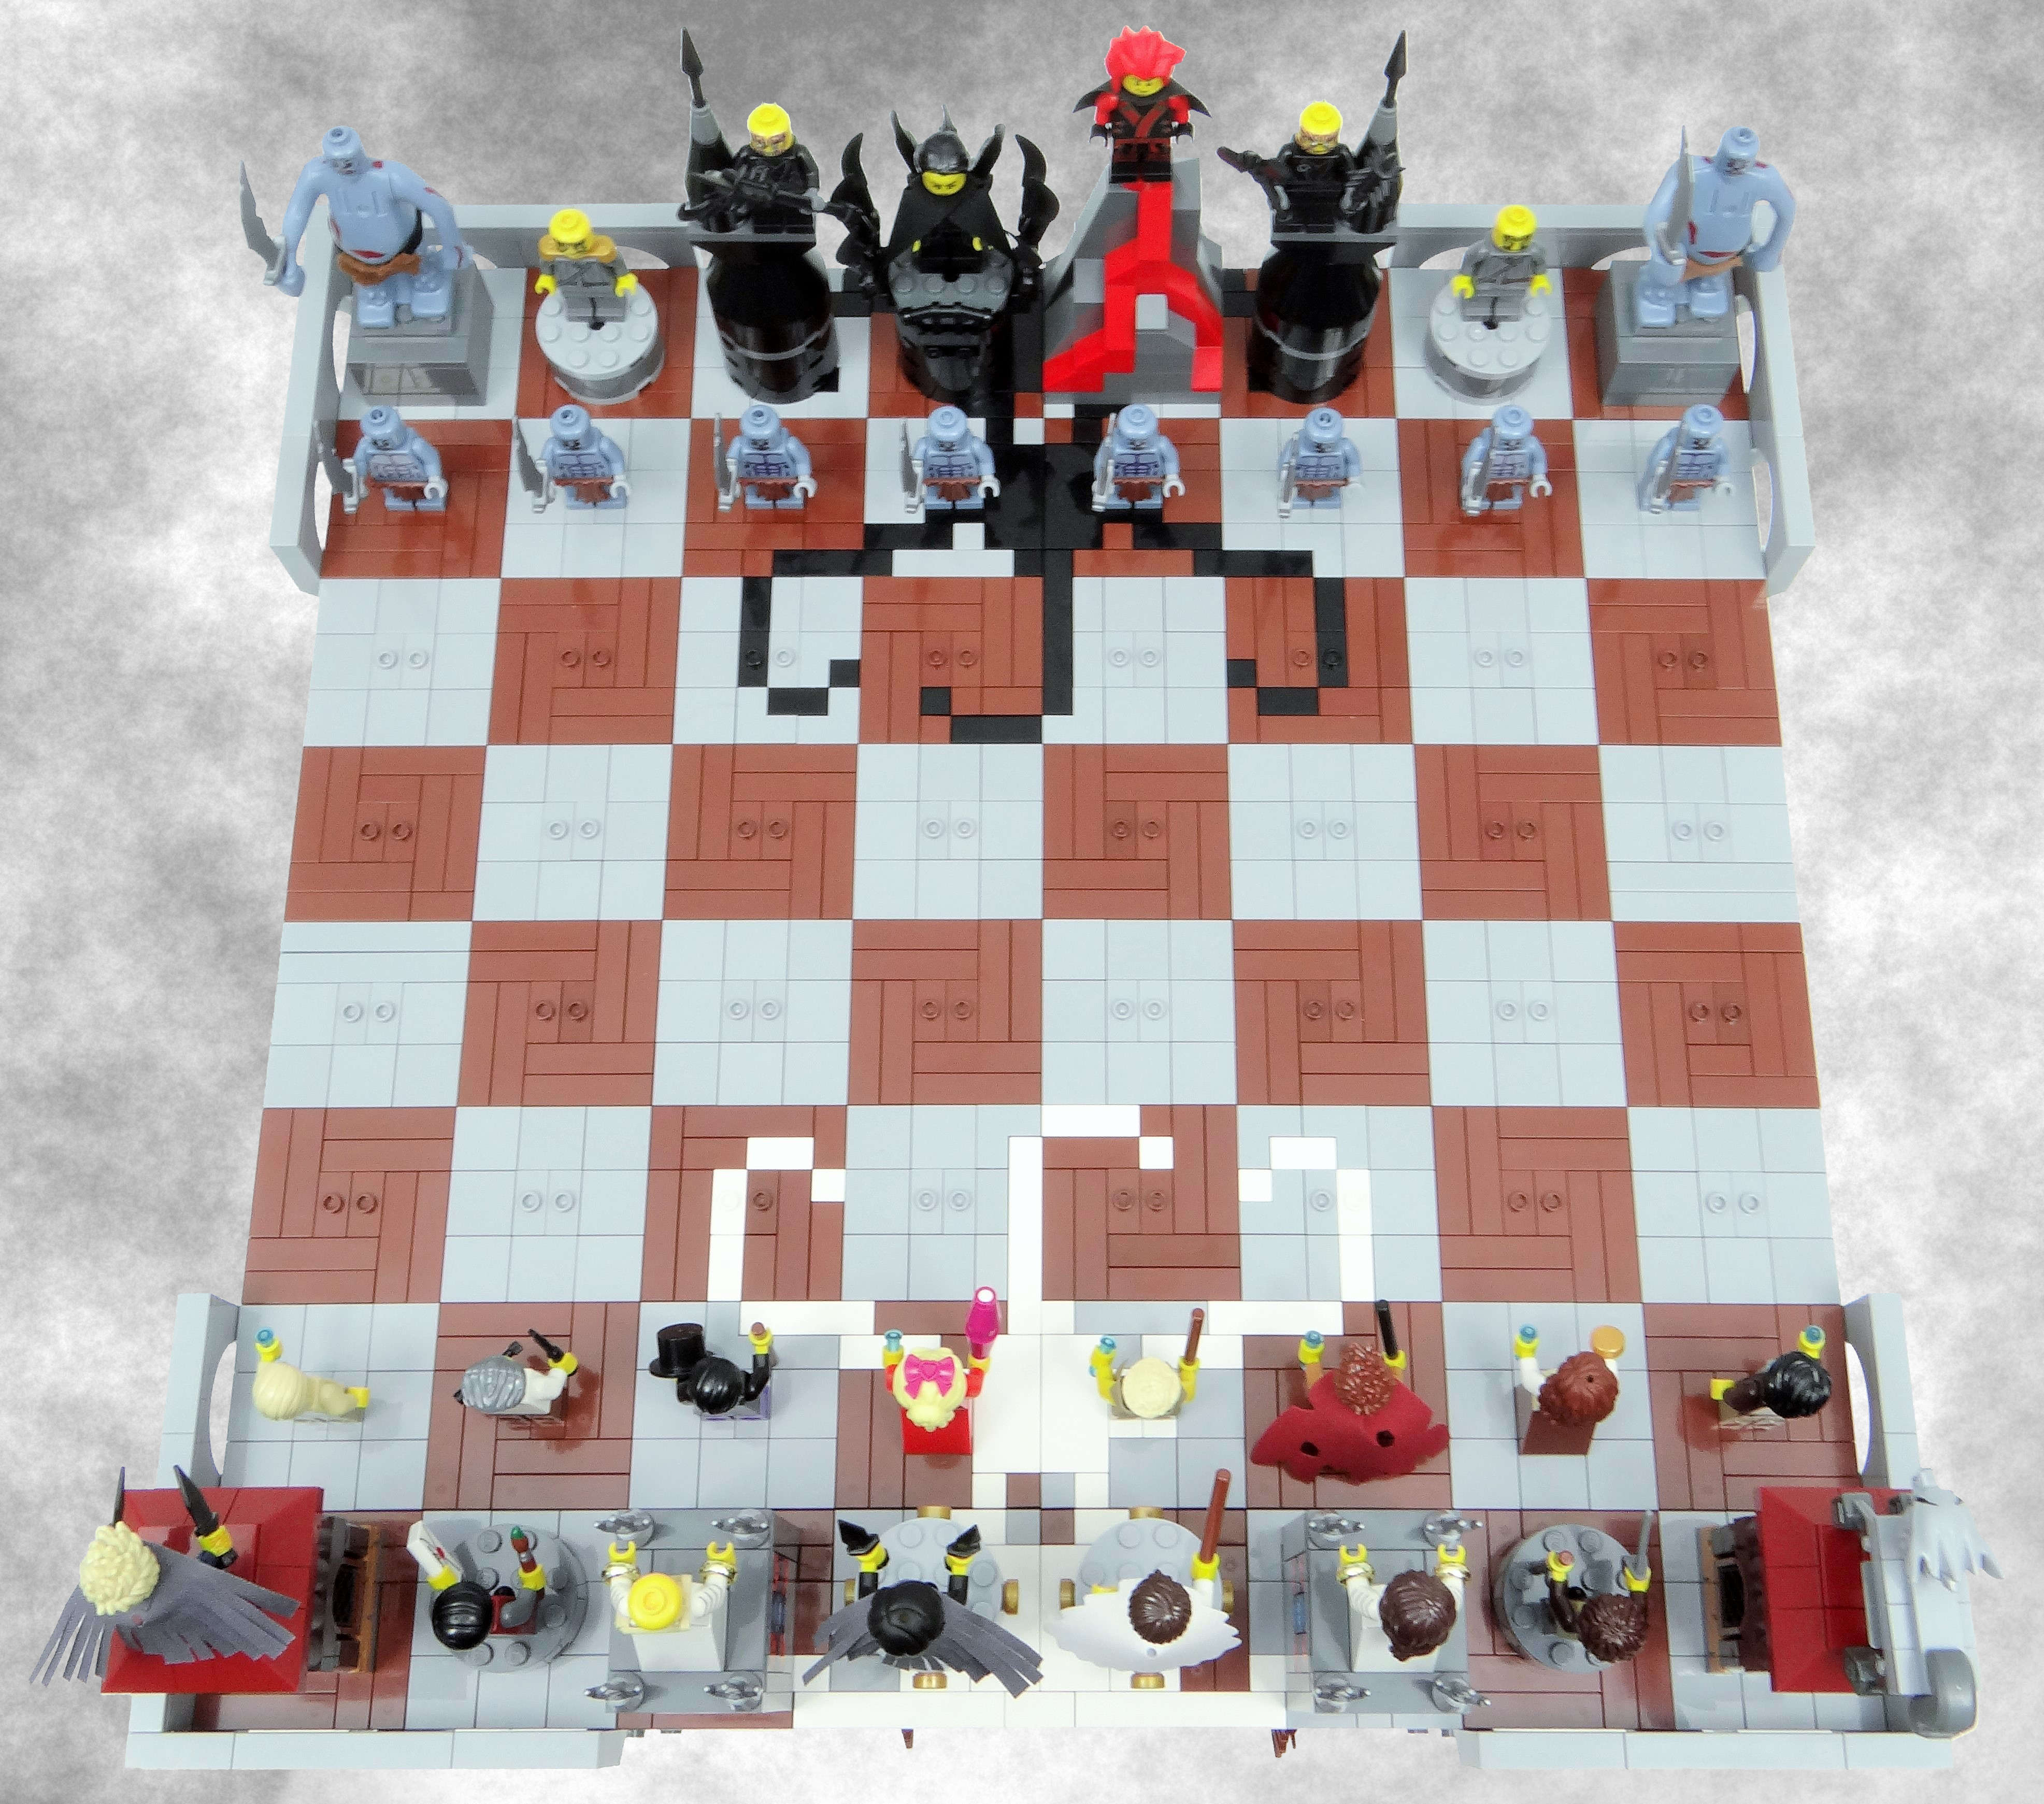 mistborn_chess_5_top